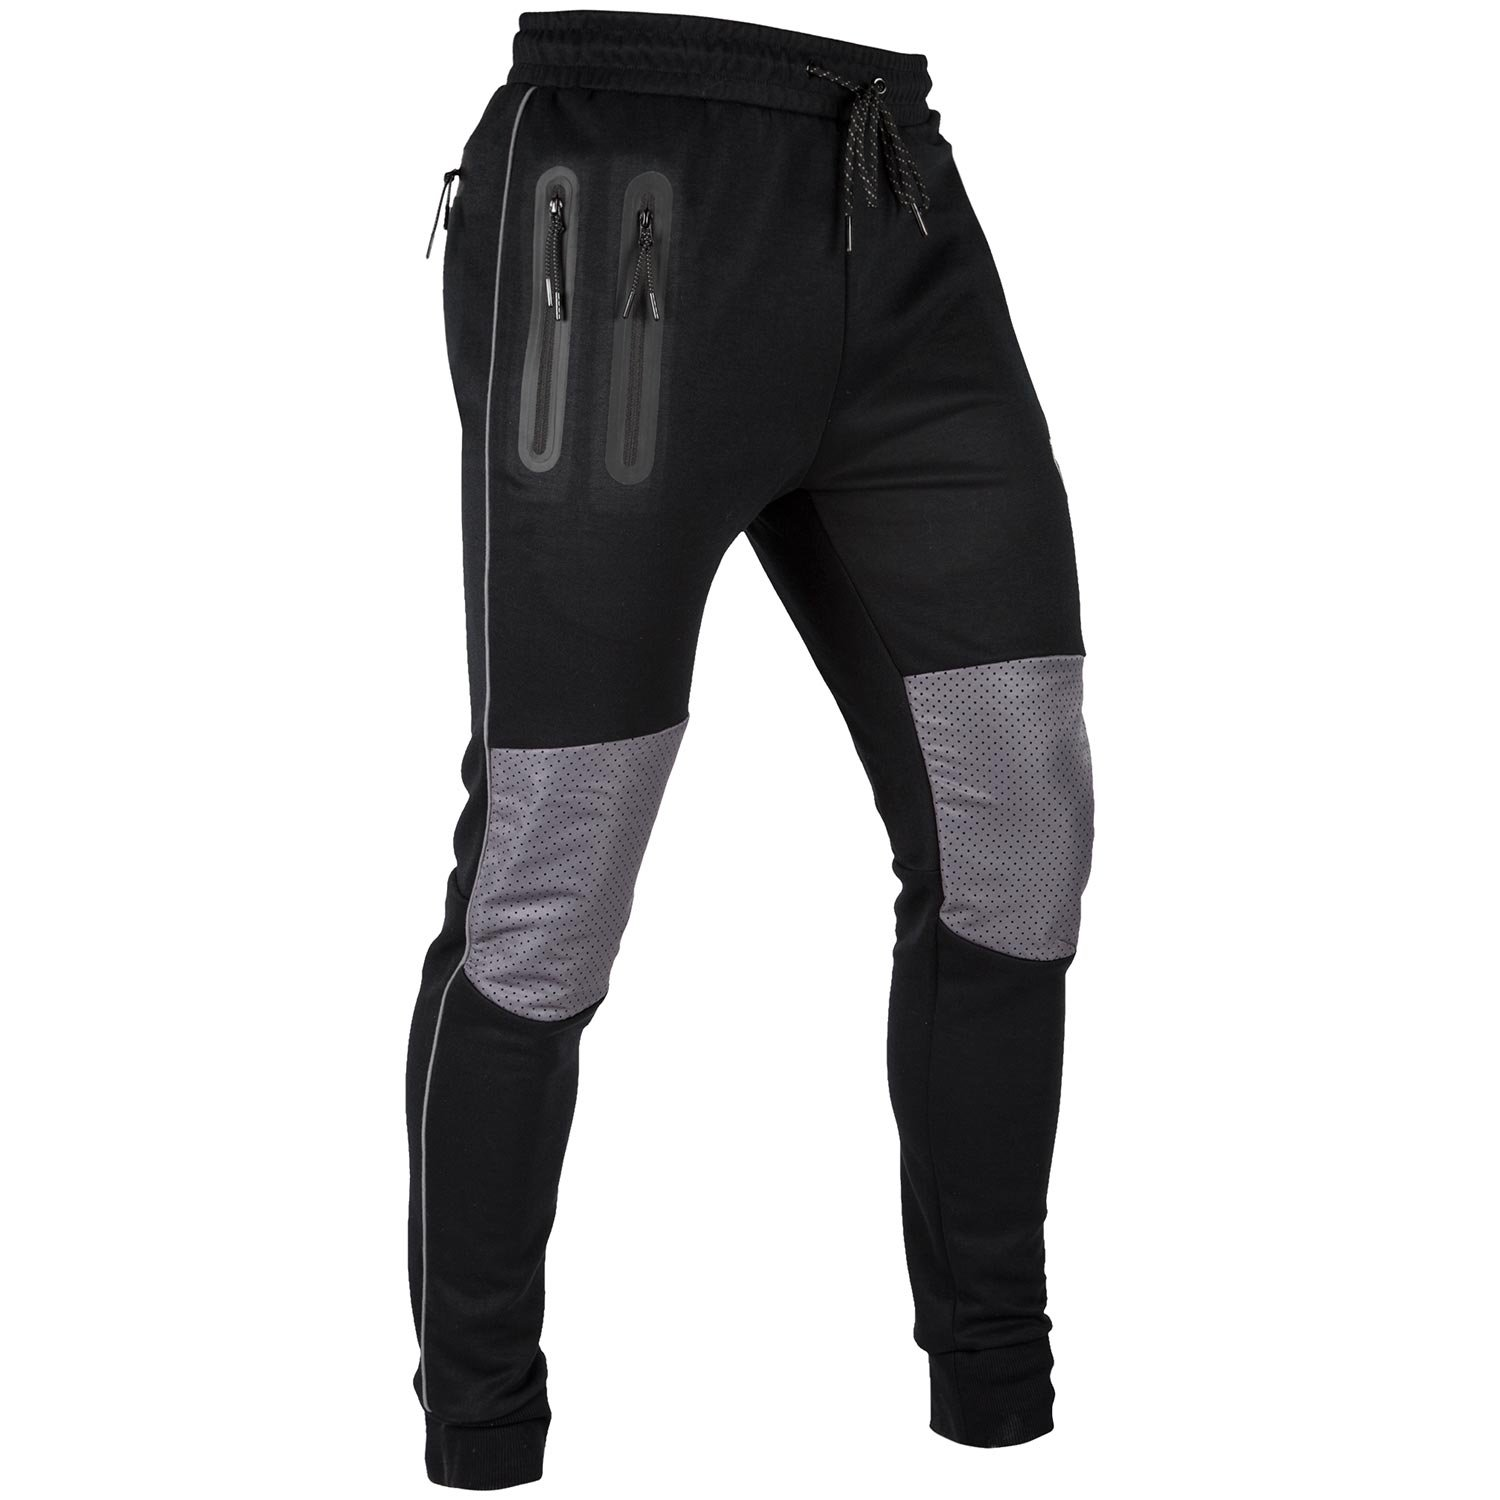 Venum Laser Pants - M, Black, Medium by Venum